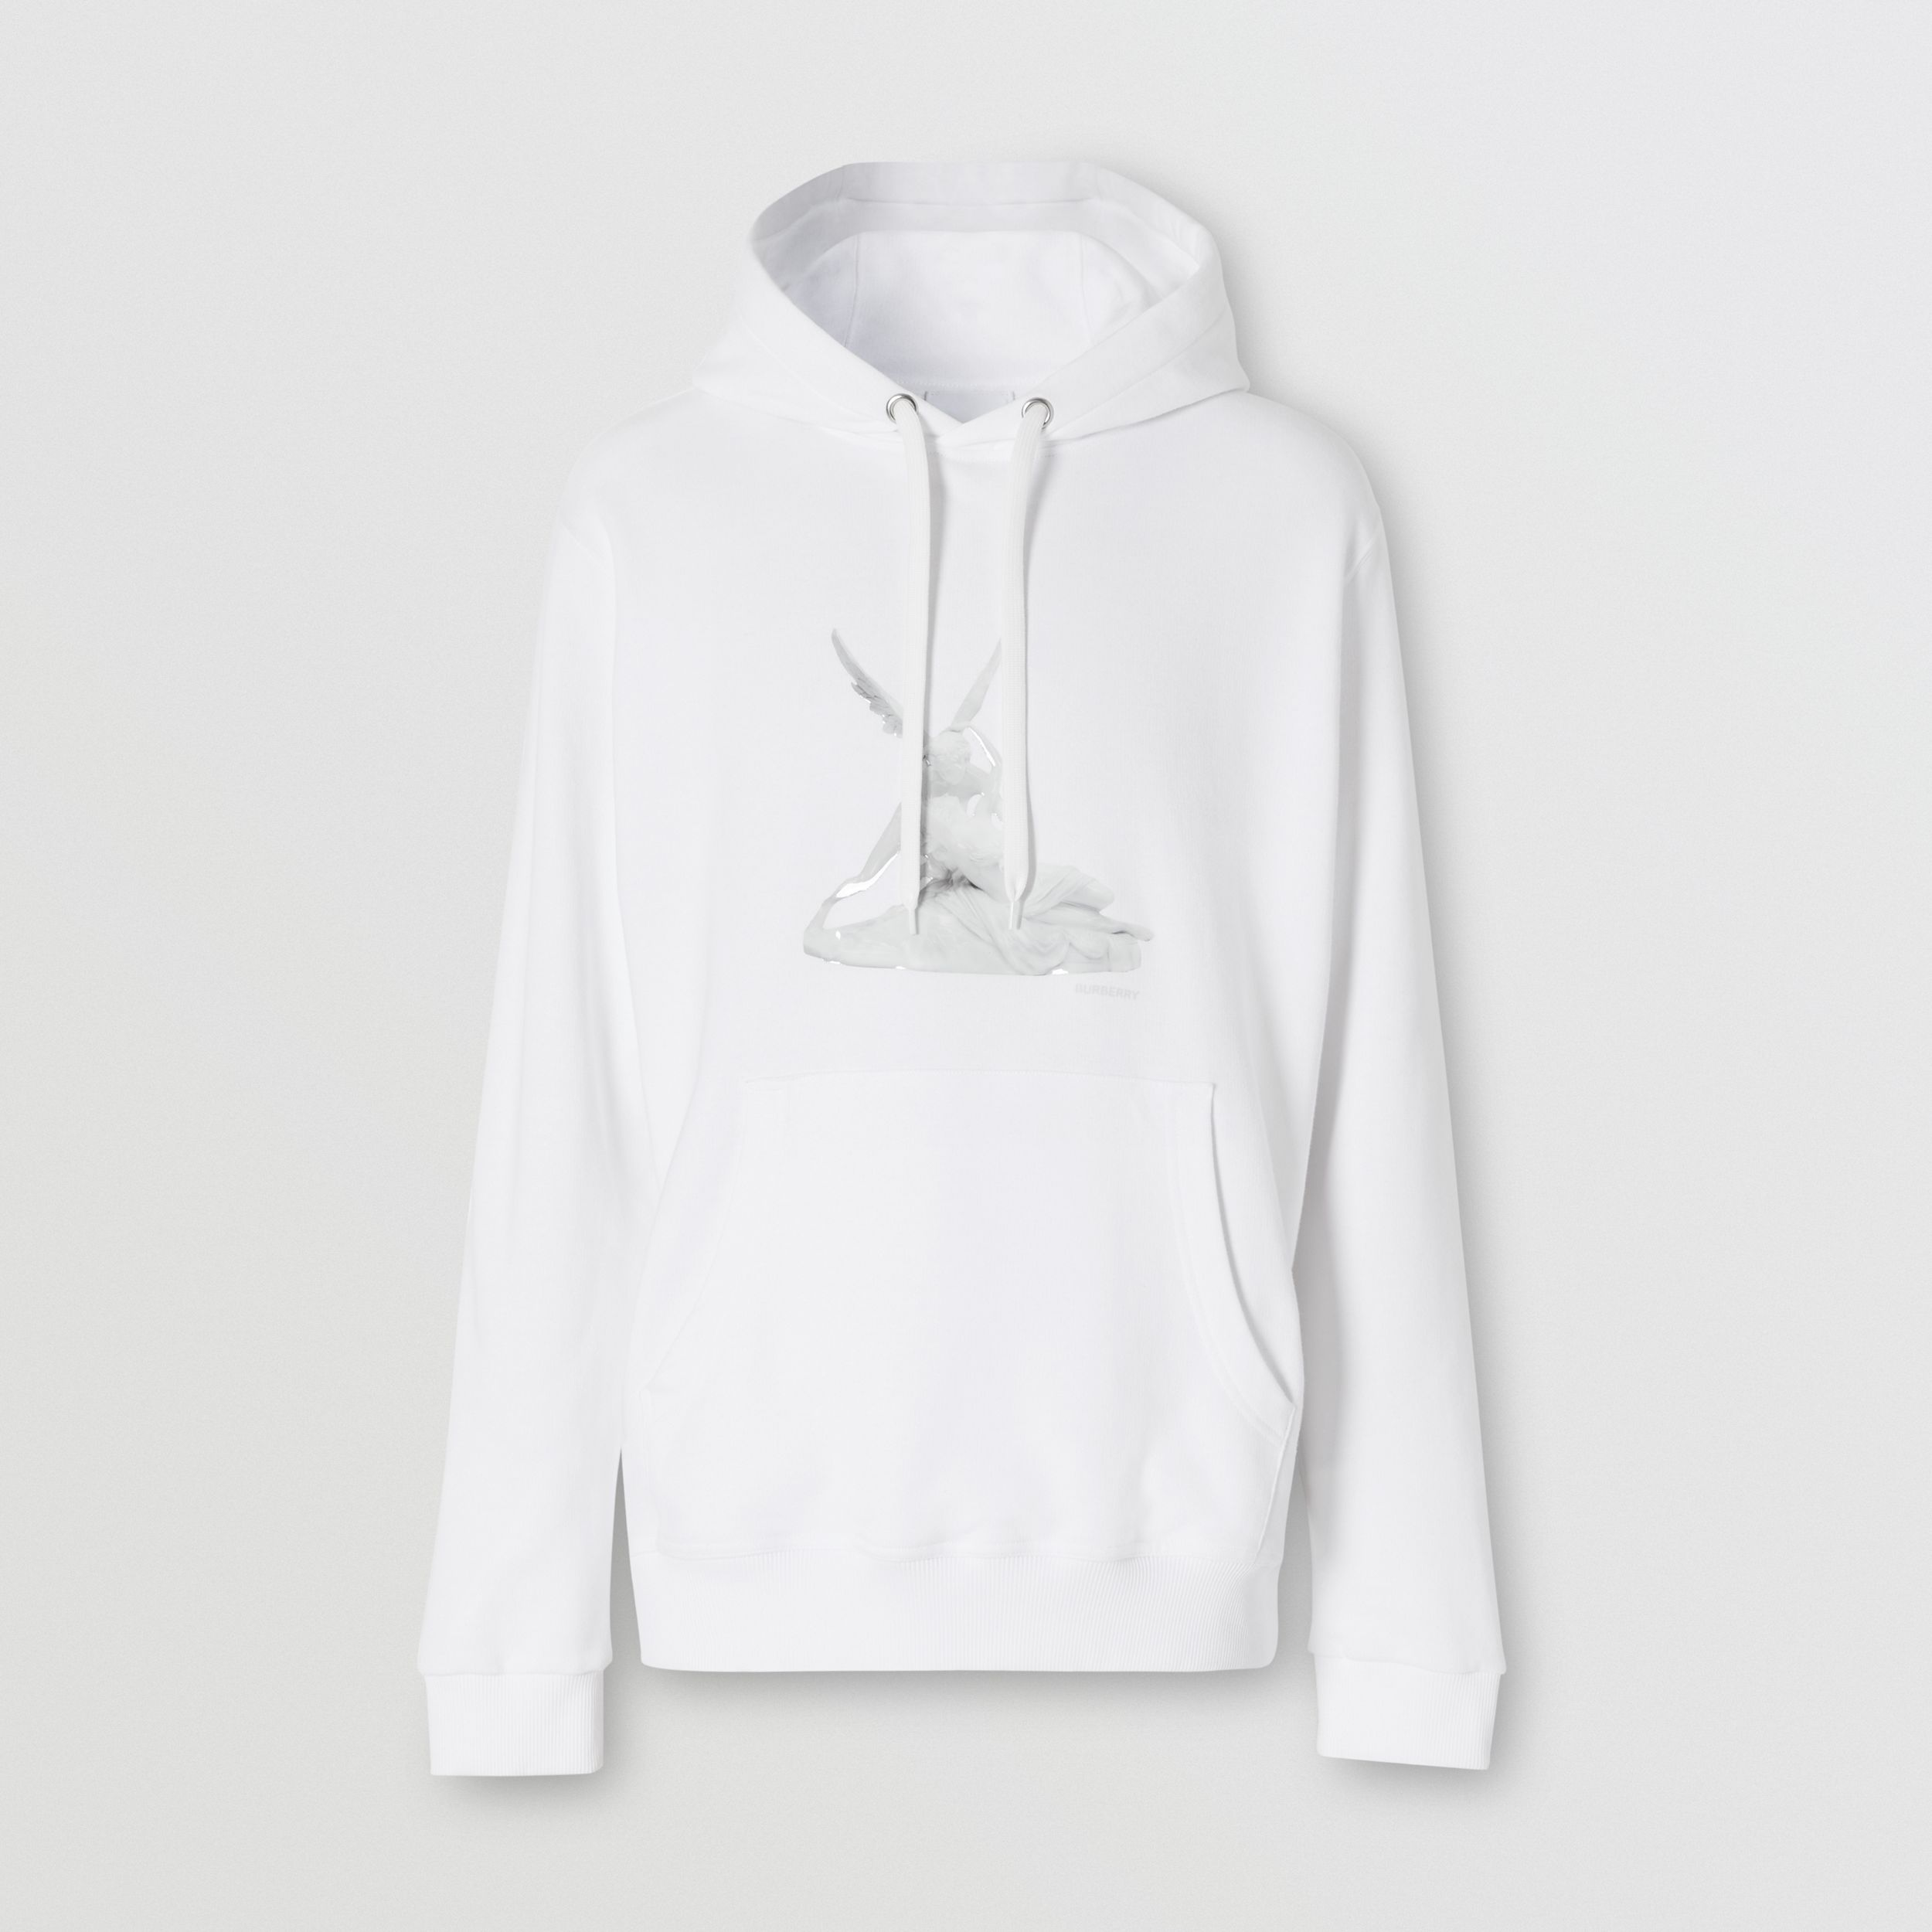 Cupid Print Cotton Oversized Hoodie in White - Men | Burberry - 4